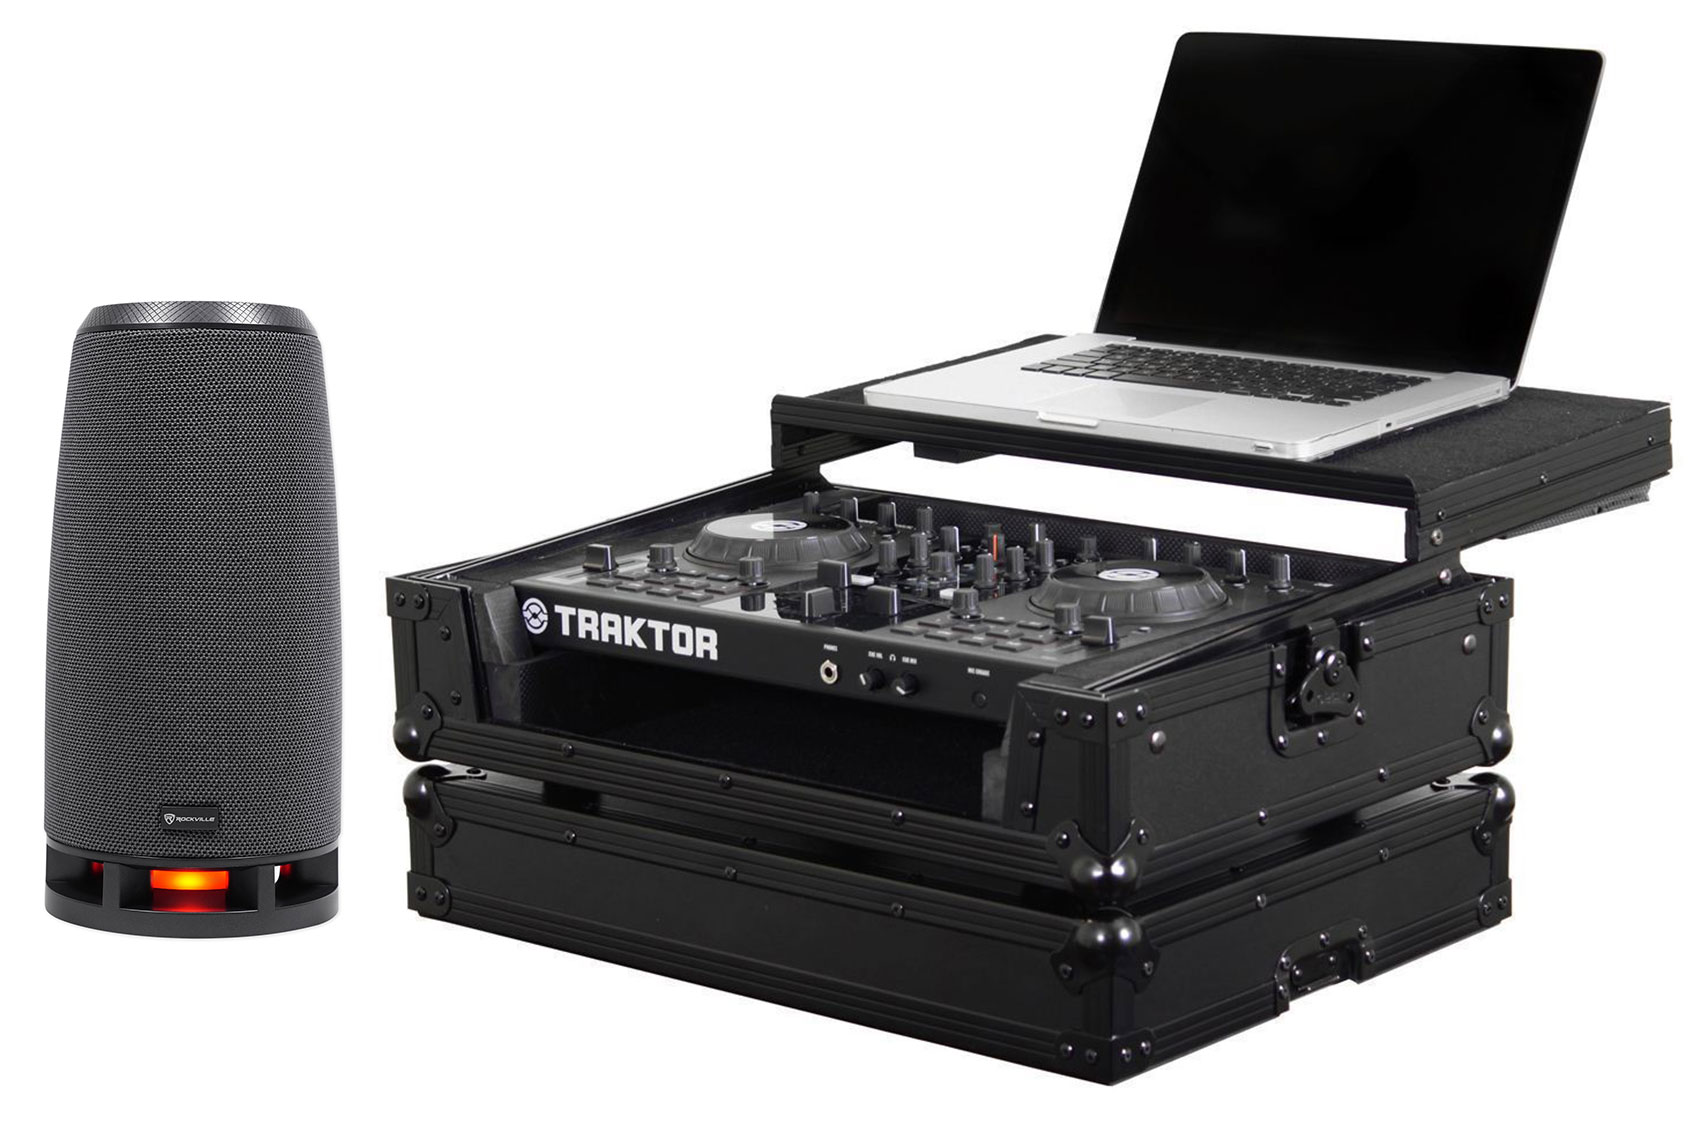 Odyssey FZGSTKS2BL Flight Zone NI Kontrol S2 DJ Case w/ Laptop  Shelf+RockShip